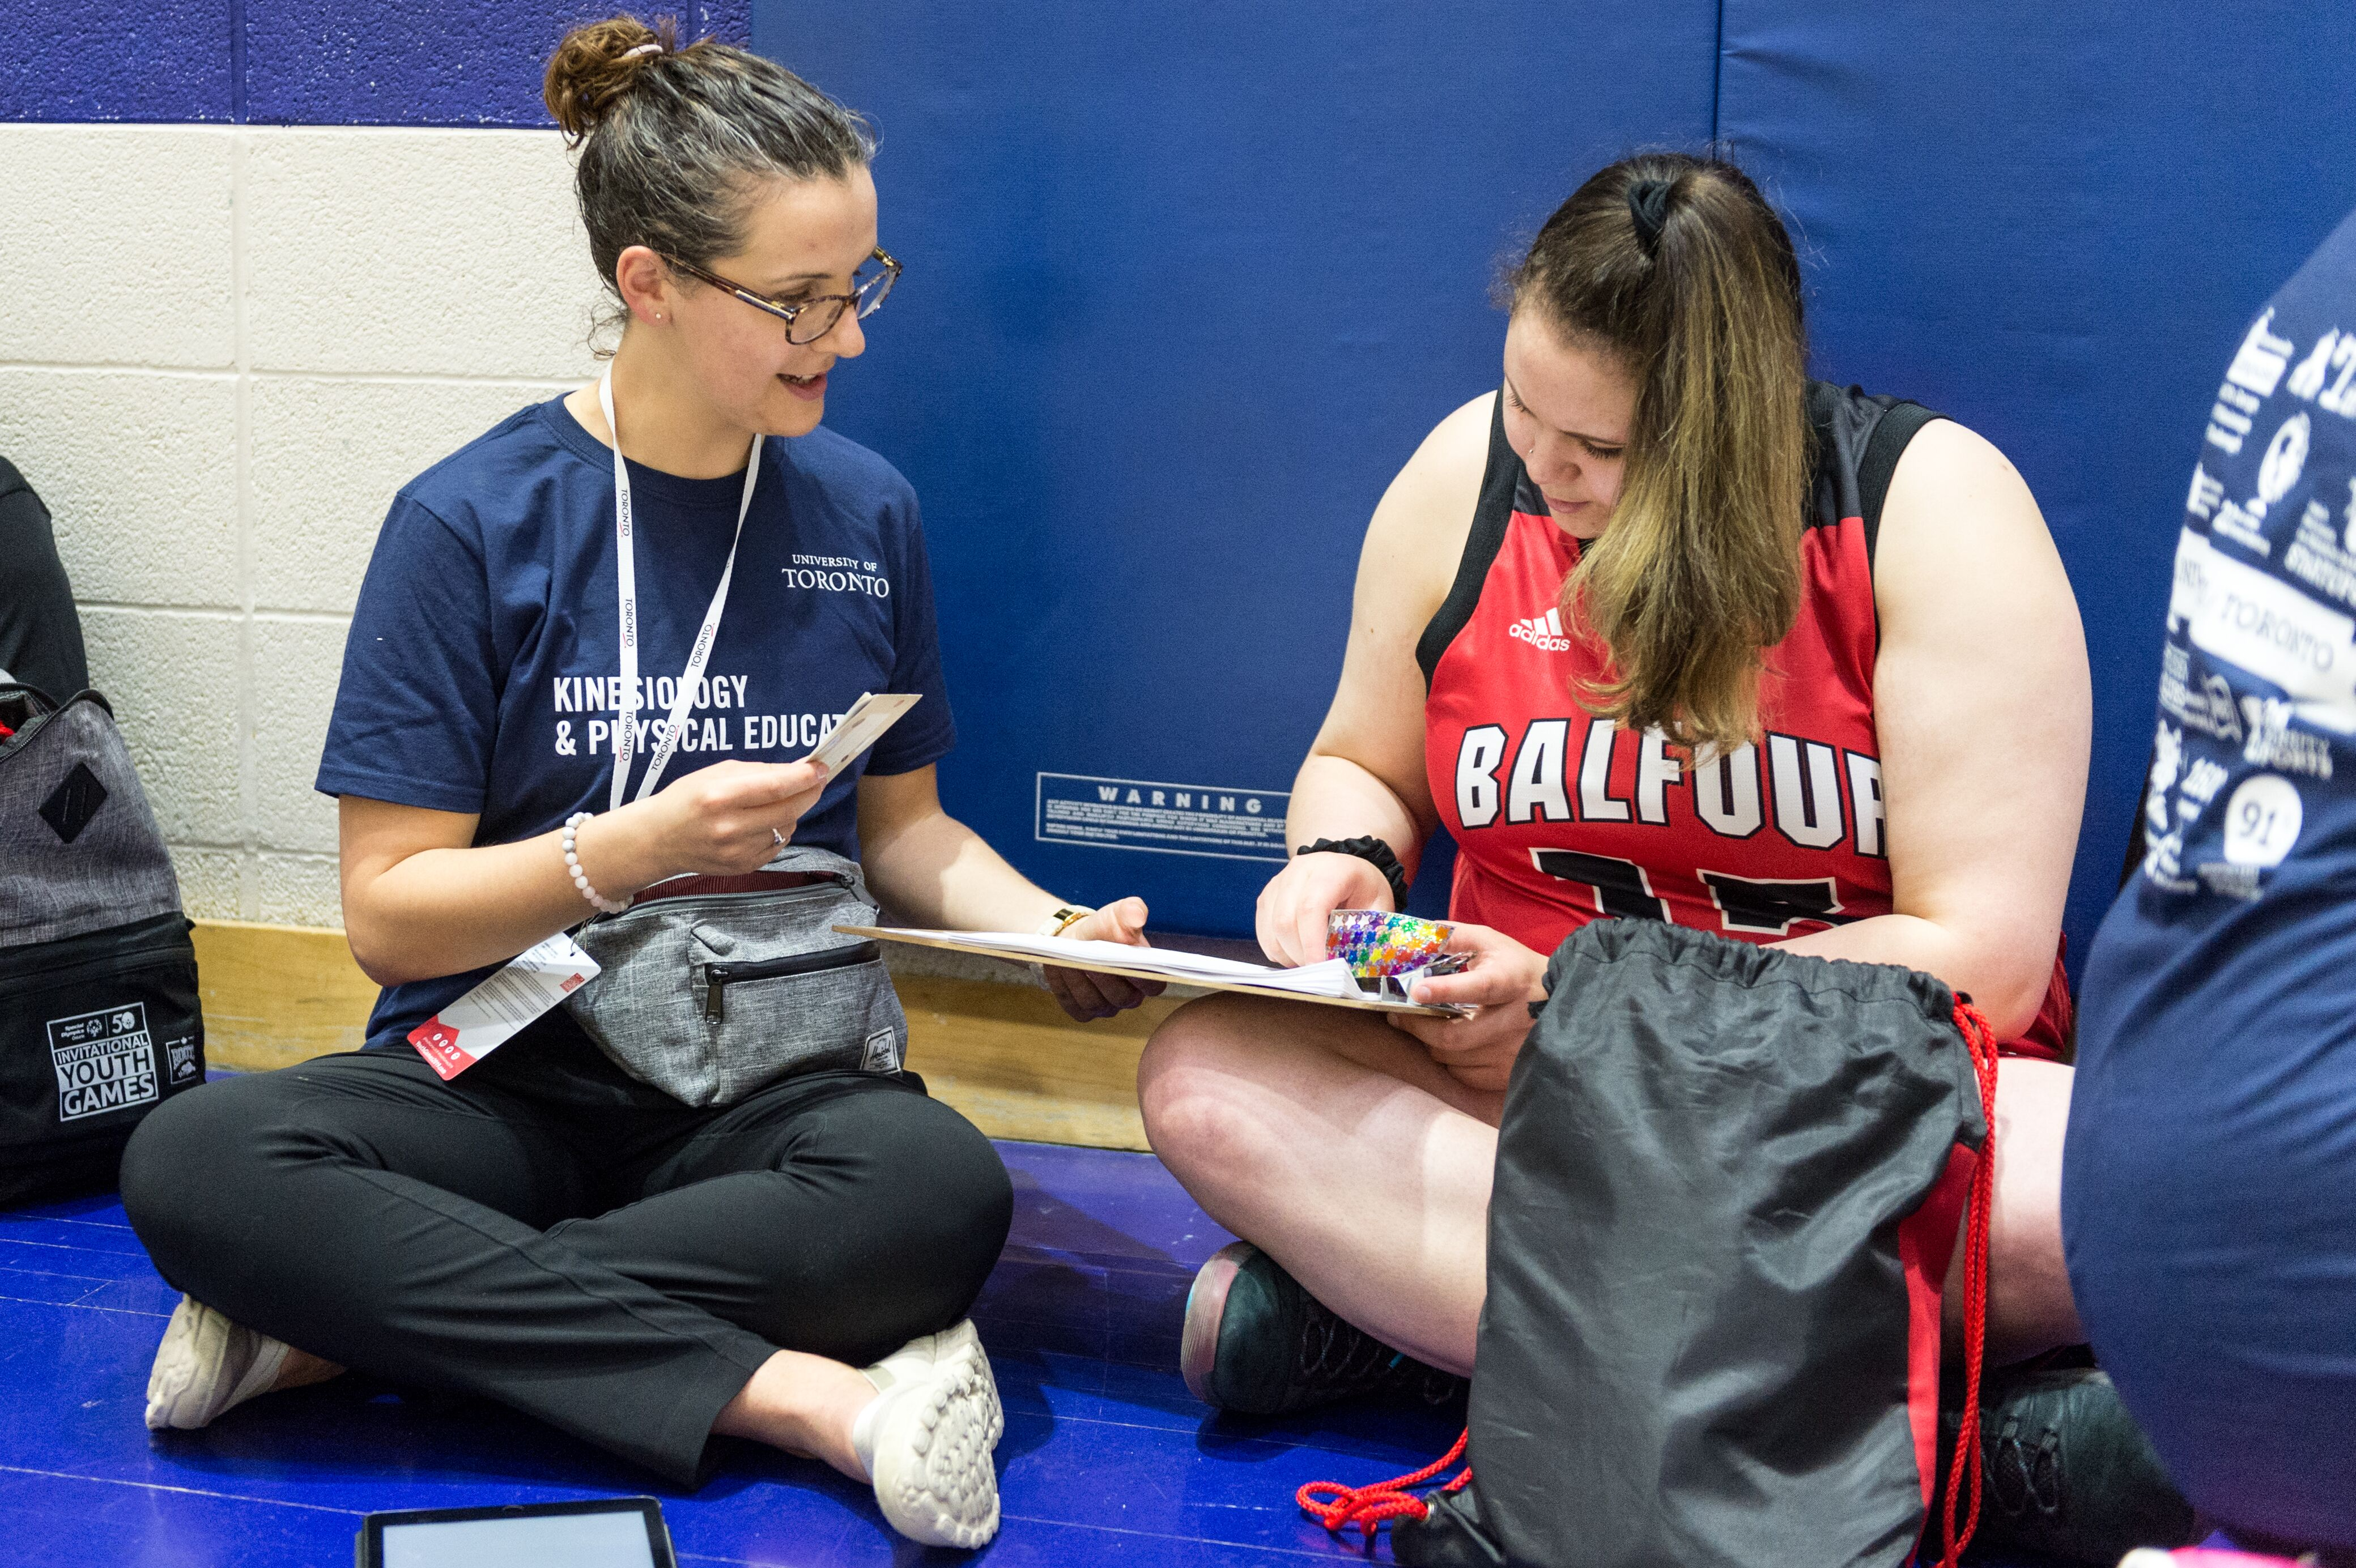 2019 Special Olympics come to the 6ix | UofT - Faculty of Kinesiology & Physical Education